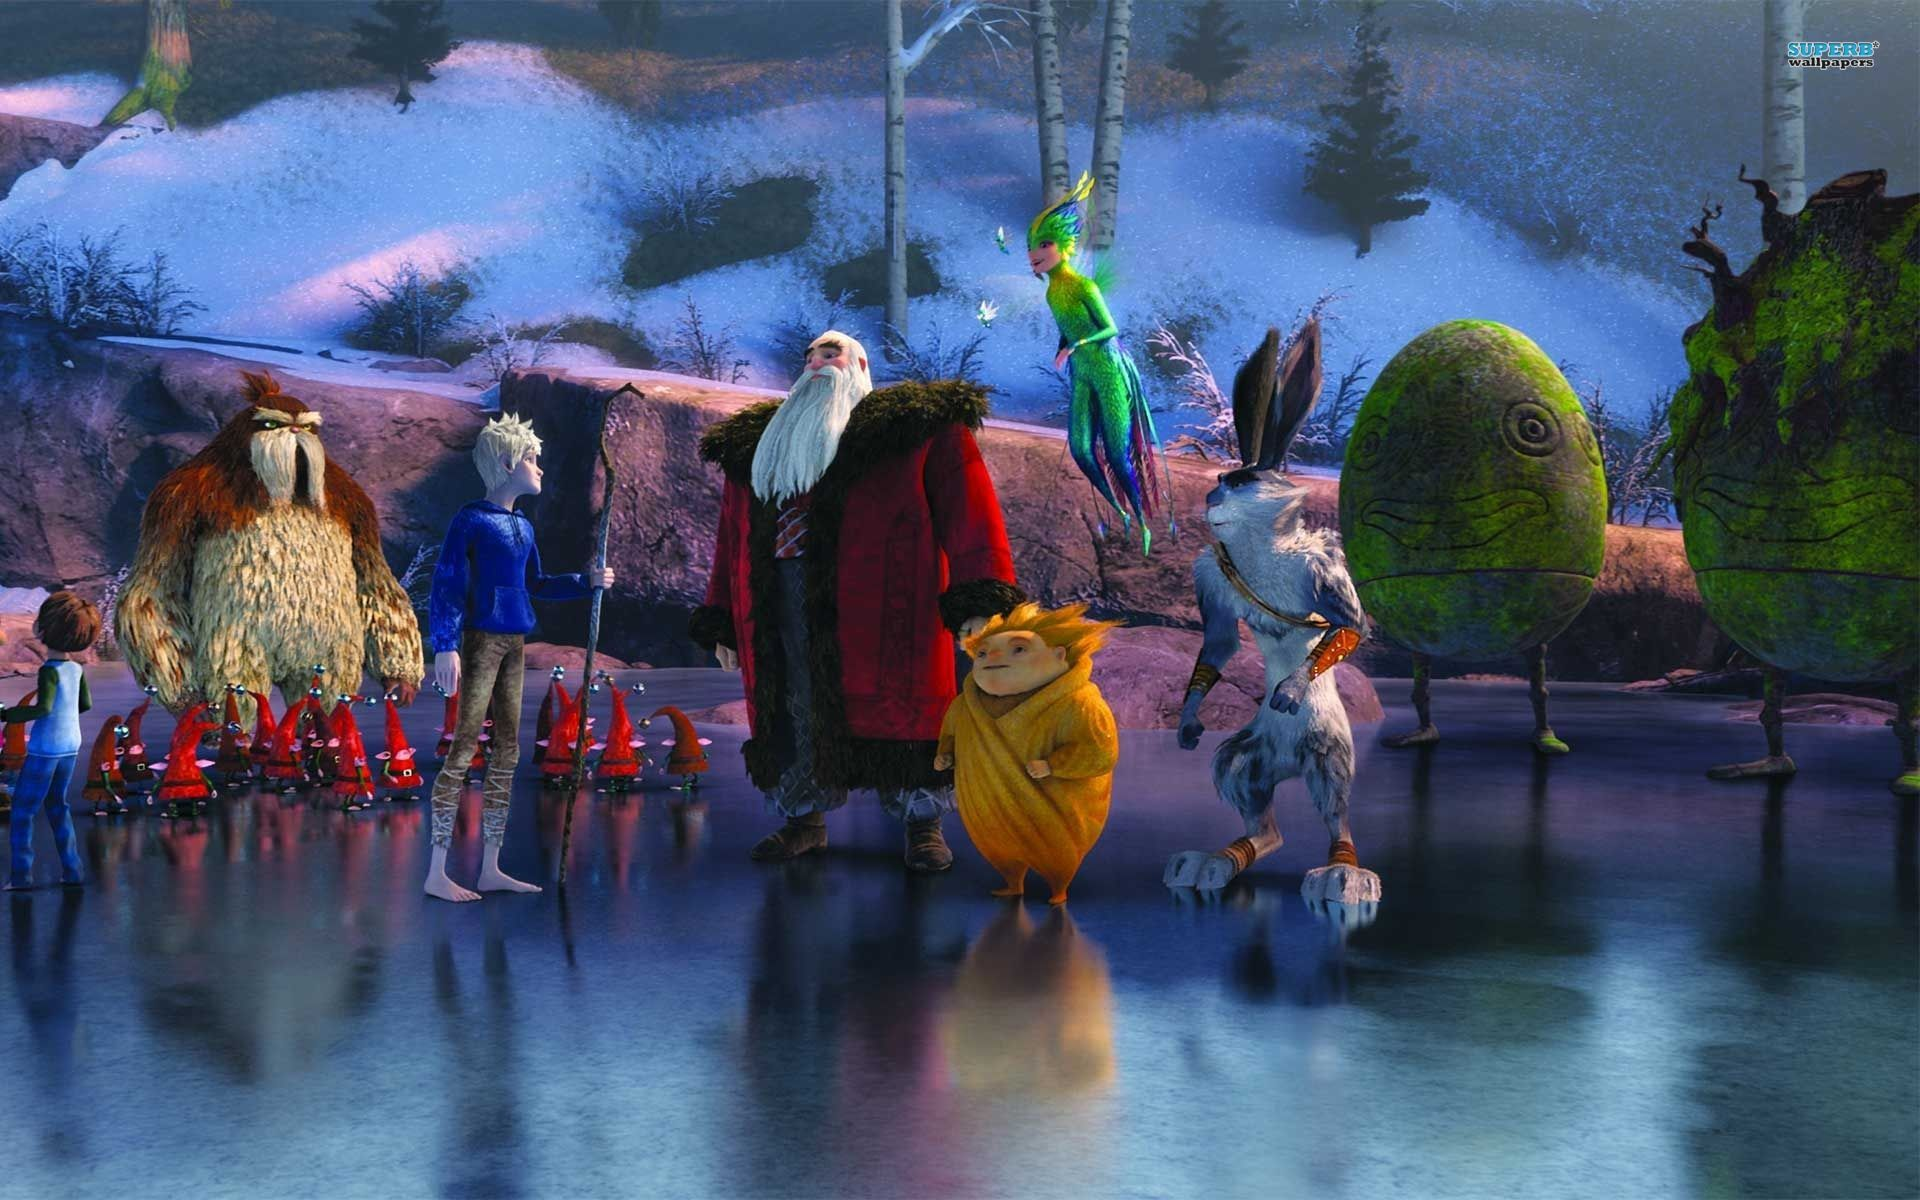 Rise of the guardians hd desktop background tv pinterest hd rise of the guardians hd desktop background thecheapjerseys Gallery